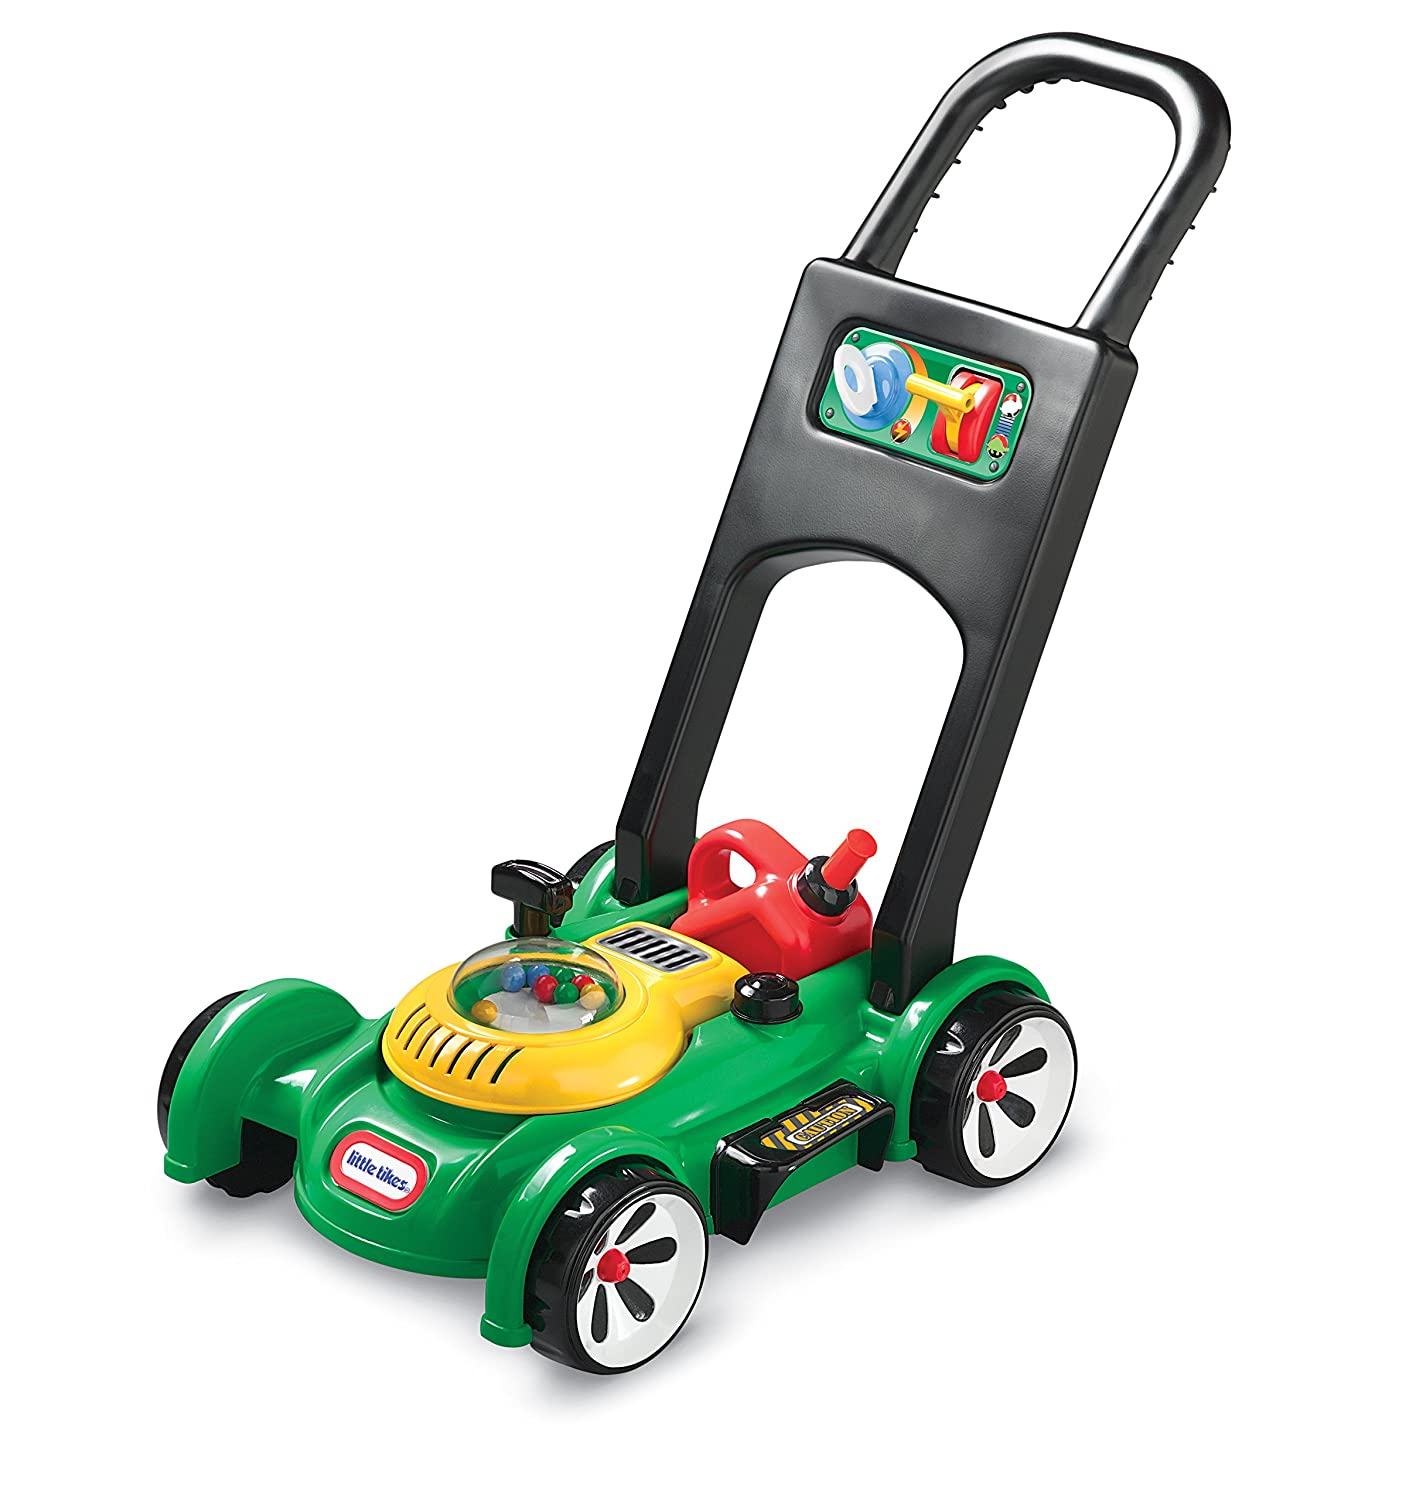 Amazon Little Tikes Gas n Go Mower Toys & Games